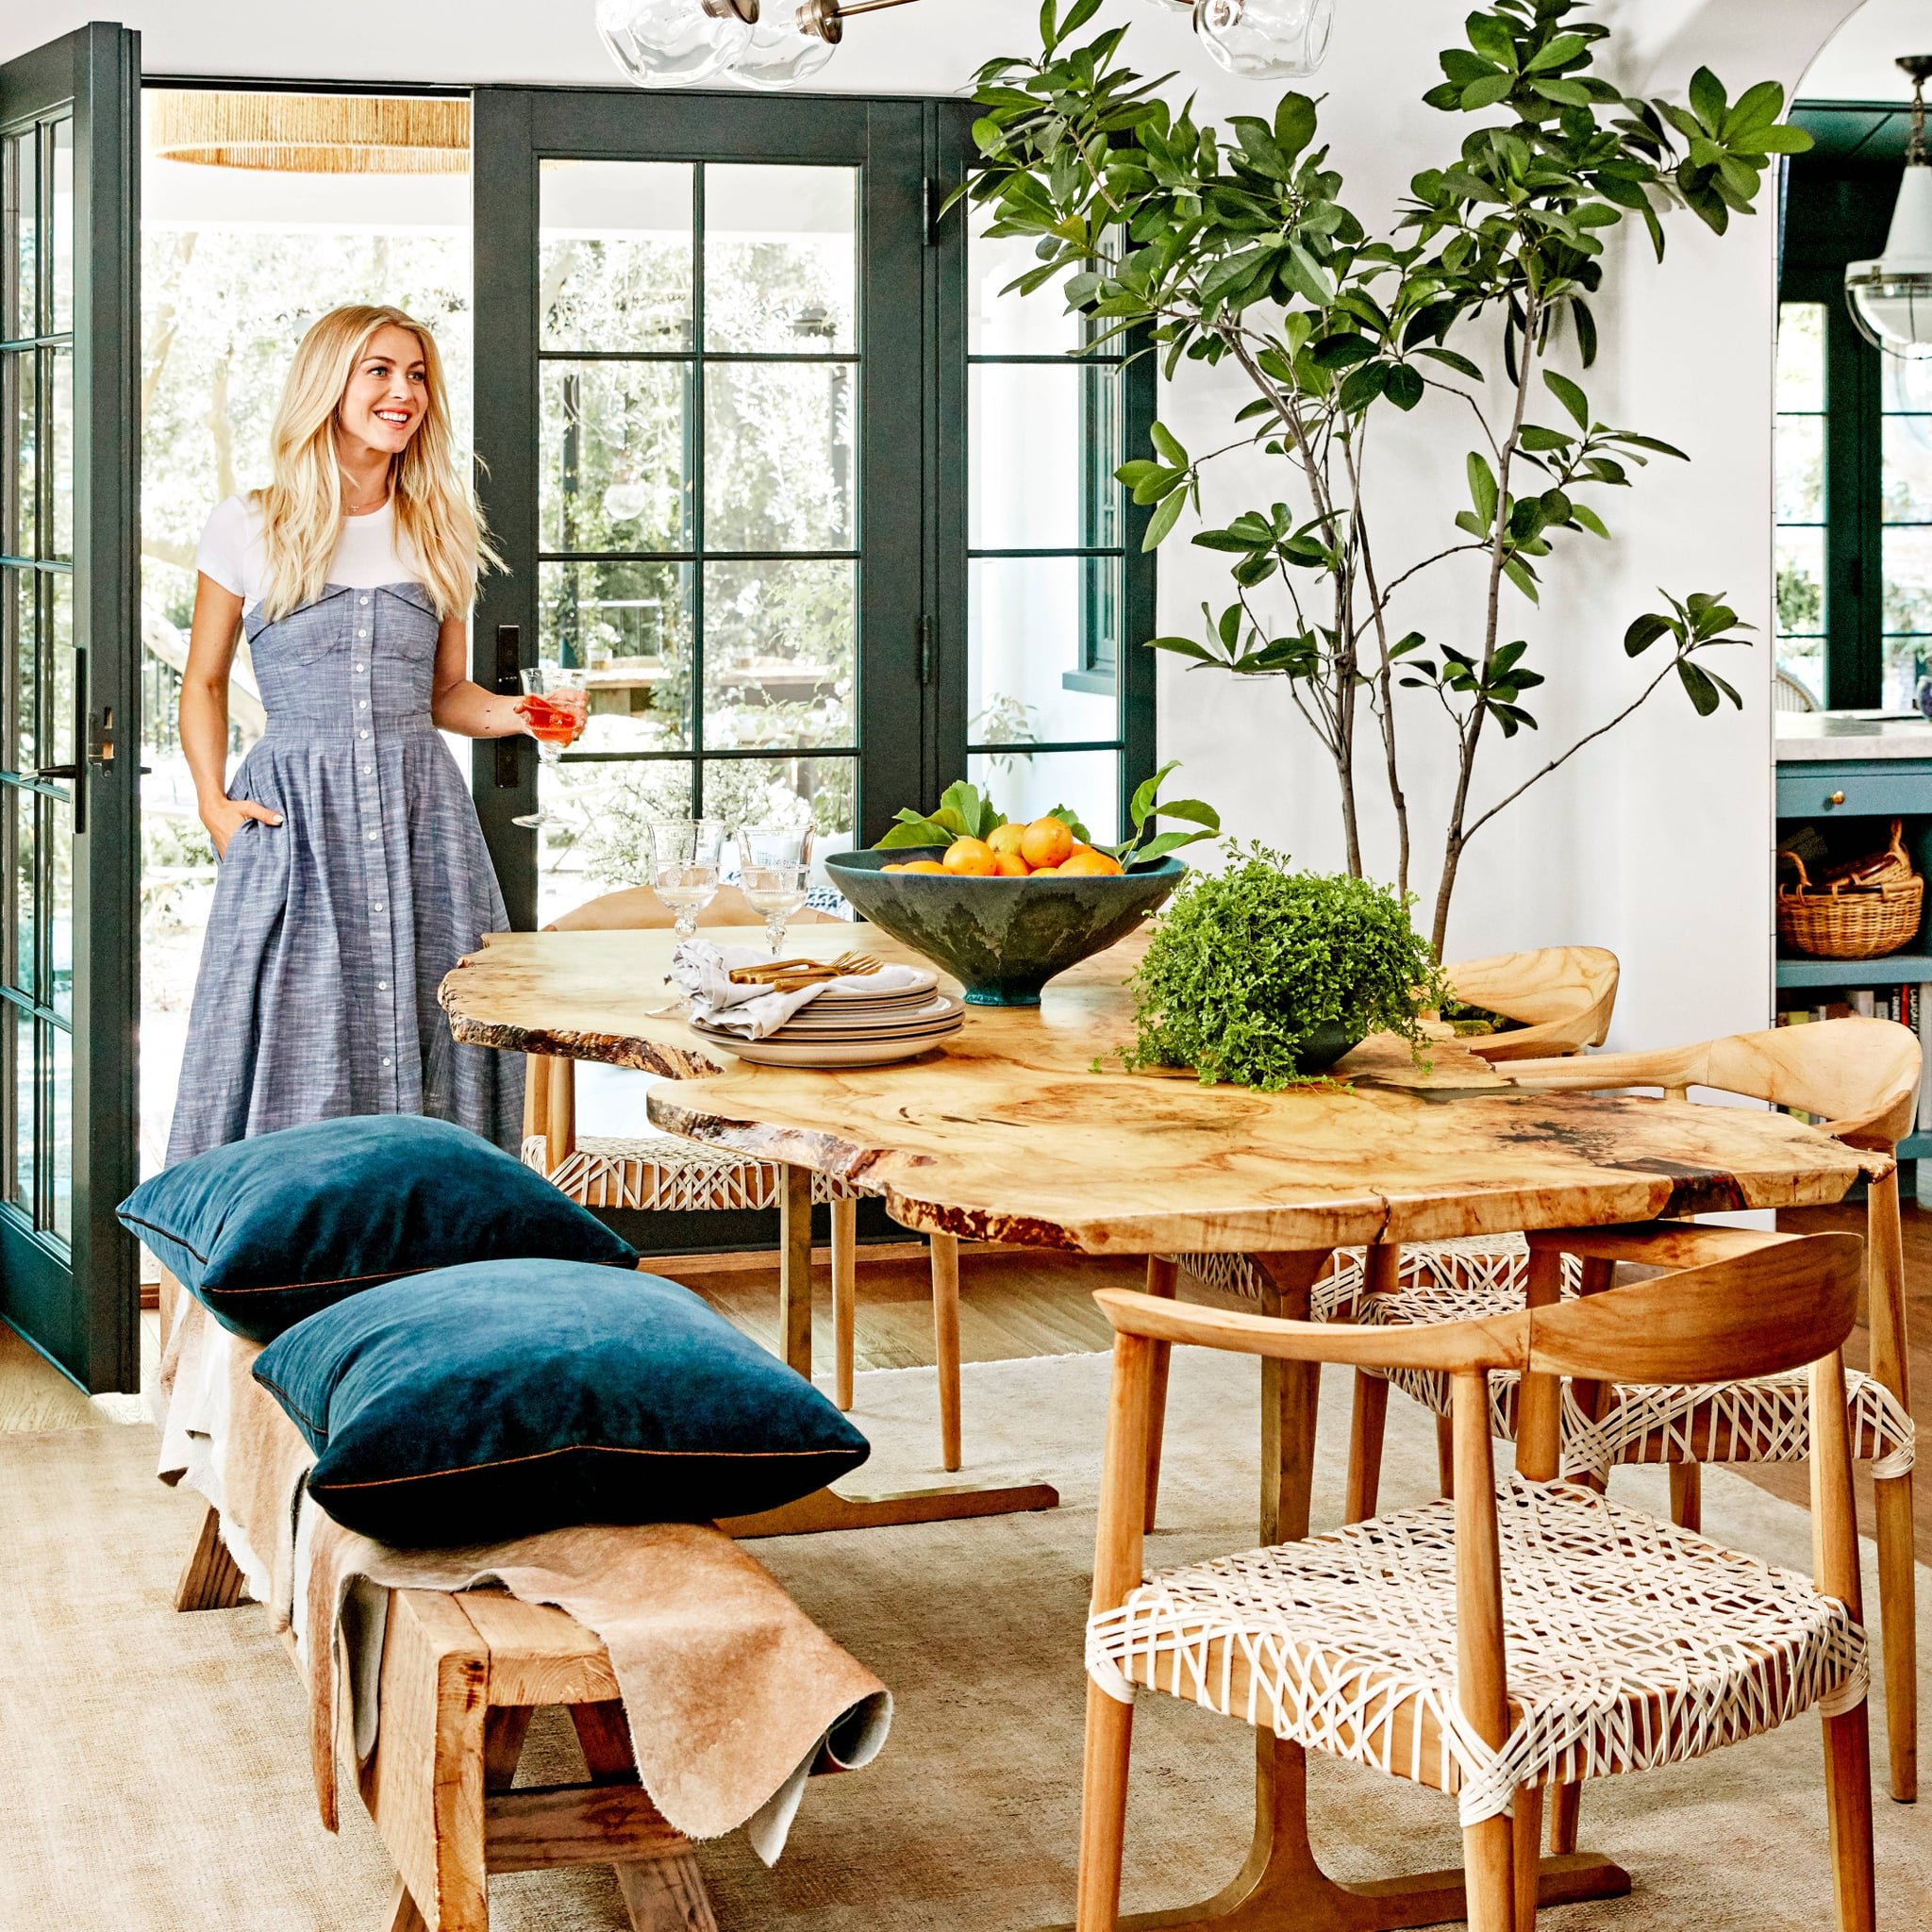 good looking better homes gardens.  Julianne Hough Better Homes Gardens POPSUGAR Home